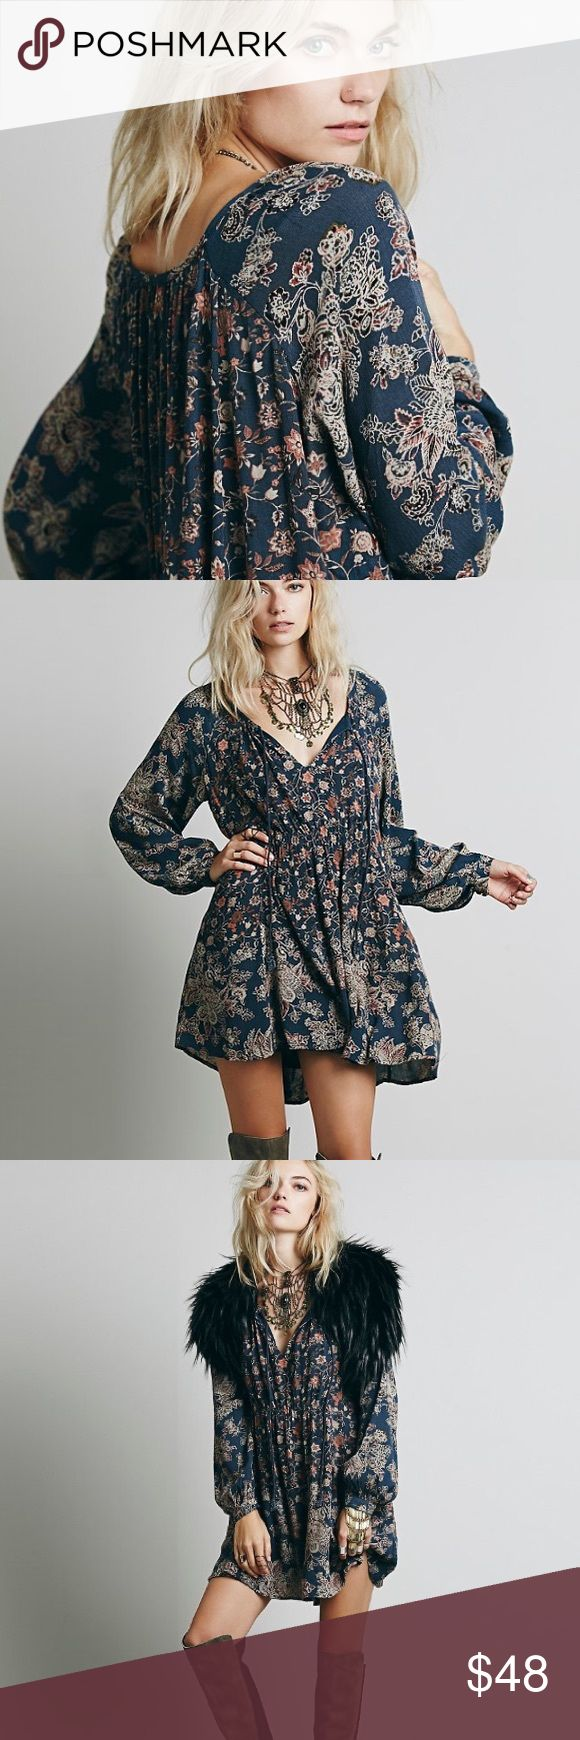 """Raglan Swing DRESS Floral Paisley Lucky Loosey BRAND NEW!! Plaited tassels sway from the neckline of a swing dress featuring raglan sleeves, a skirt defined by soft gathers, and an allover floral print. Lined. 100% Rayon. Color: Indigo Combo.   S: Bust: 46.5""""/Length: 32.3"""" M: Bust: 48.1""""/Length: 32.7"""" L: Bust: 49.6""""/Length: 33.1"""" XL: Bust: 51.2""""/Length: 33.5""""  🌟🌟Item is Brand New, direct from the Manufacturer, & Sealed in Pkg. 🌟🌟 Dresses"""